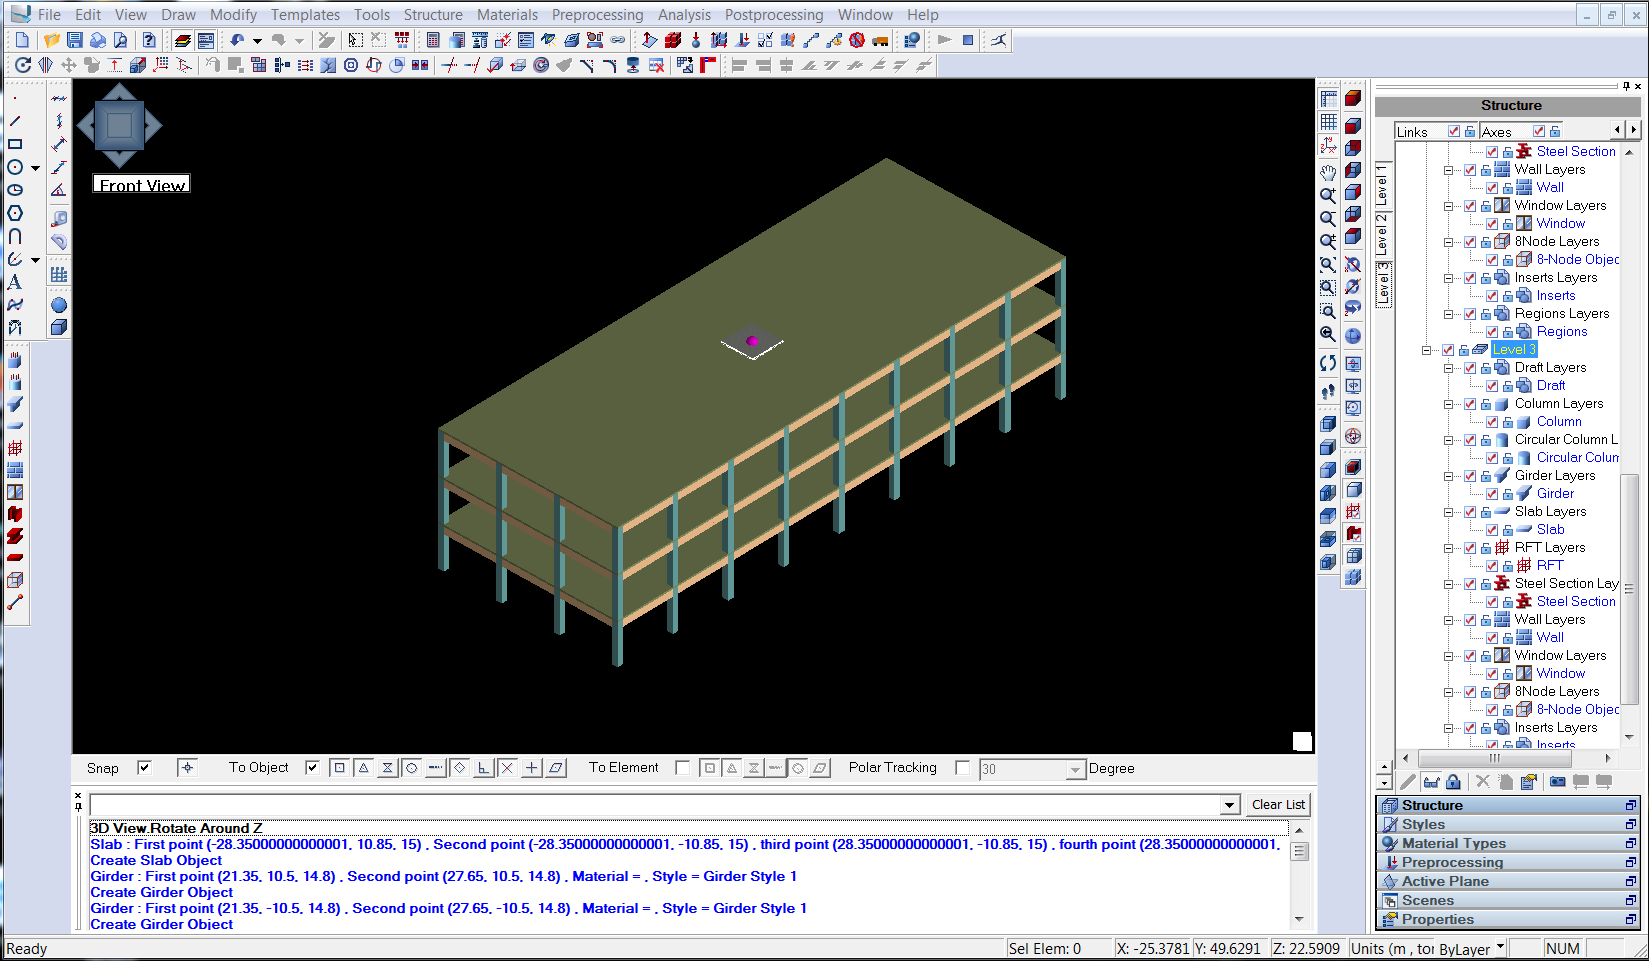 ASI's Extreme Loading® for Structures (ELS) Software